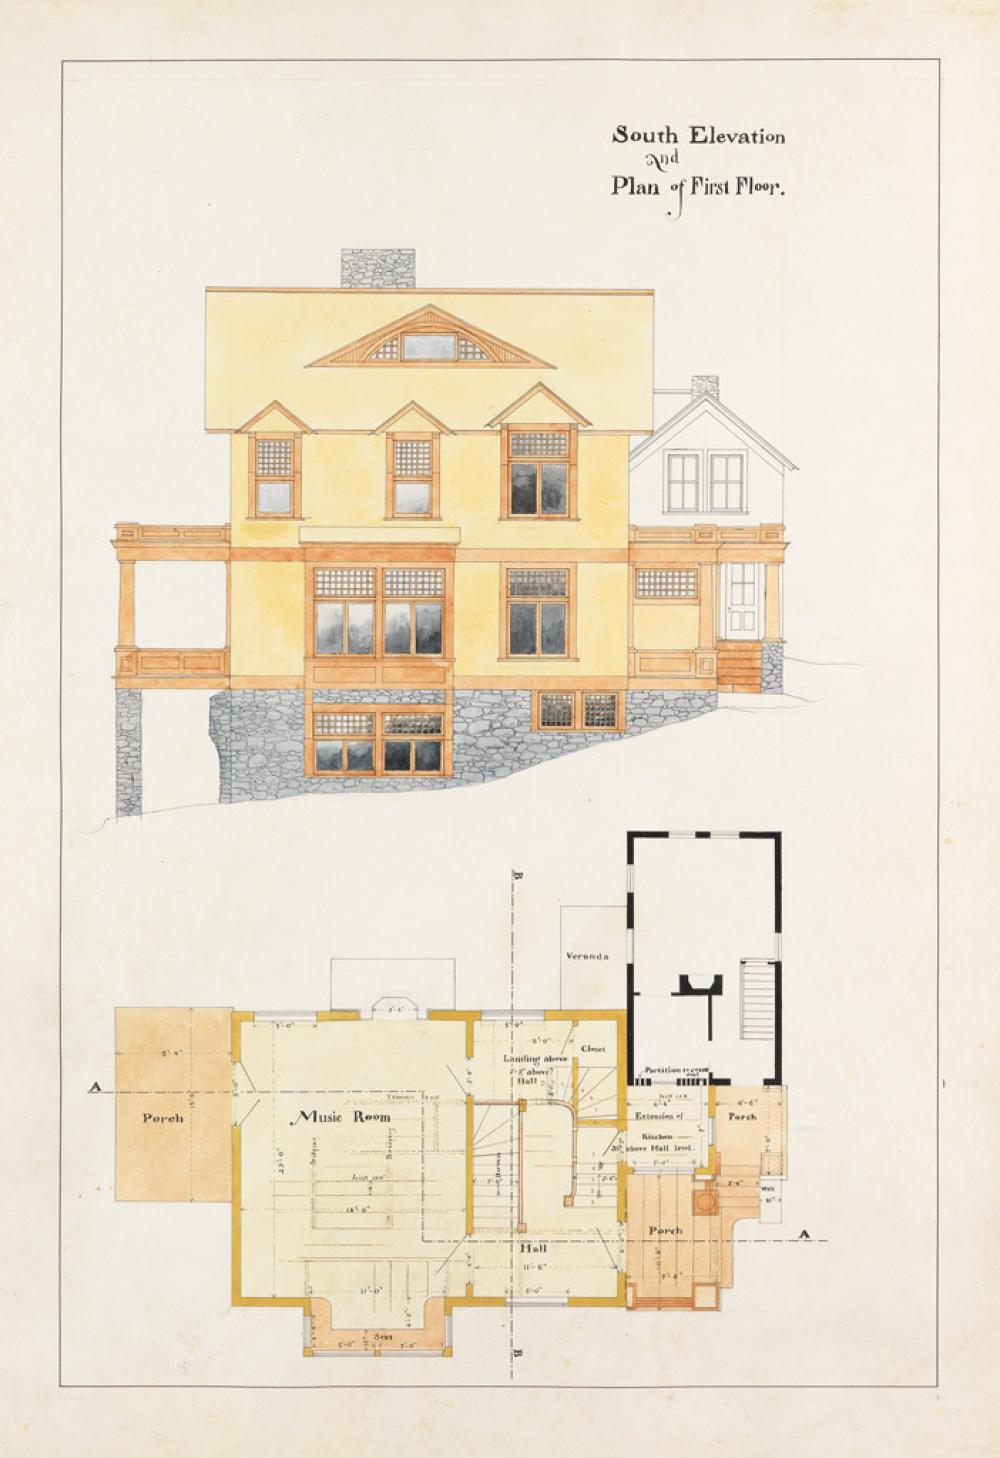 (ARCHITECTURE / CONNECTICUT.) Stilson, William W. Designs and Specifications for Shingle-Sydes, Litchfield County, Connecticut. William